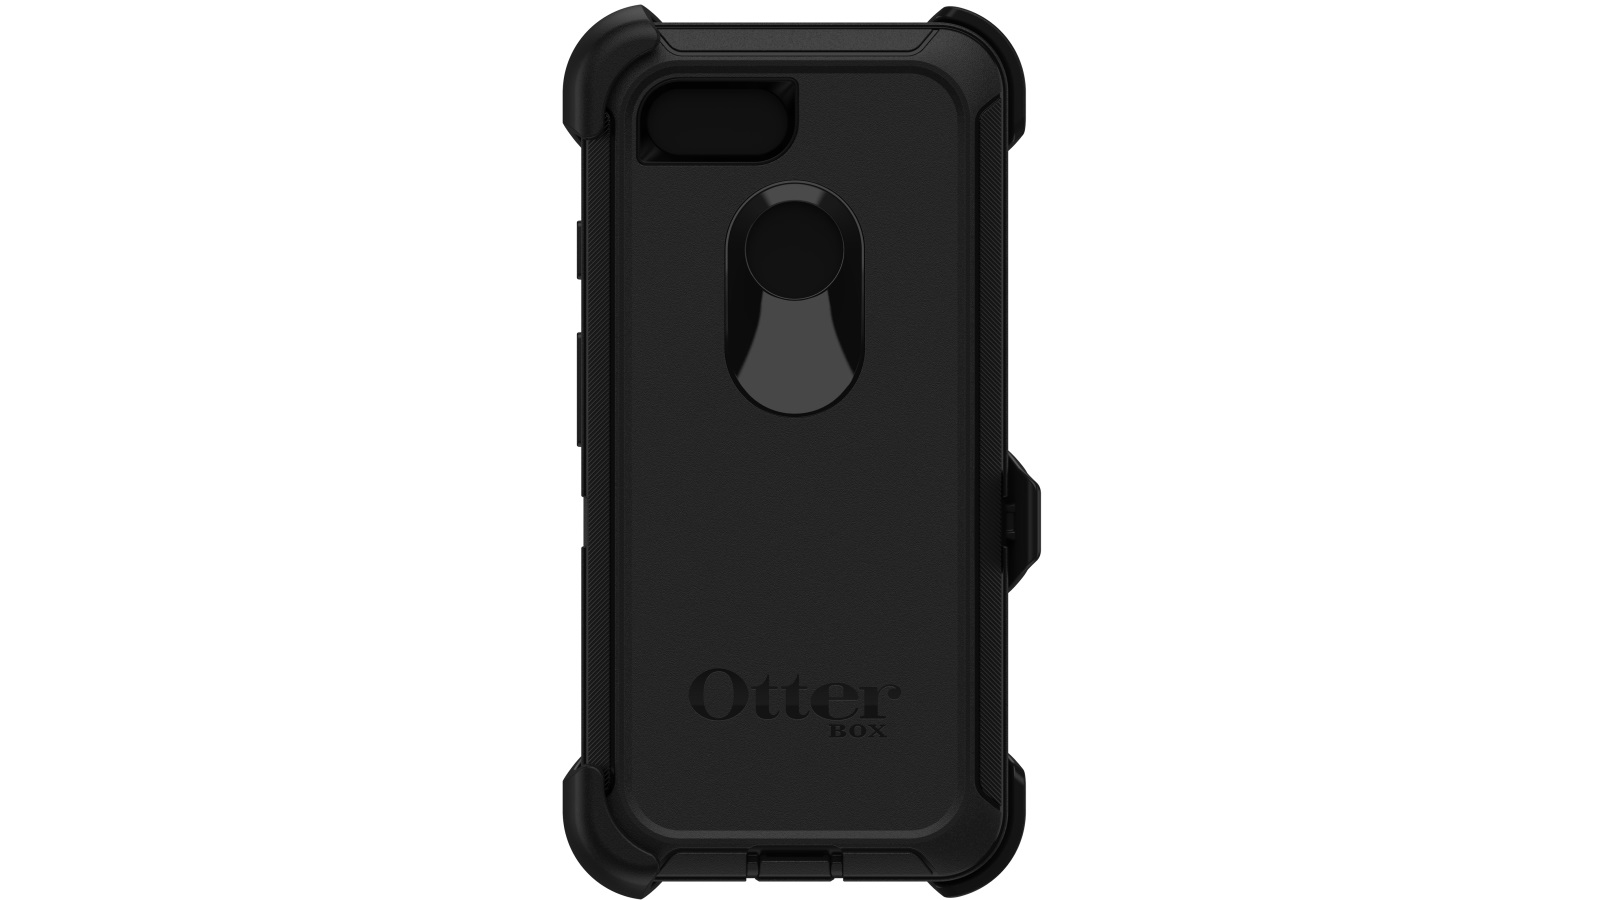 competitive price b0e31 f0260 OtterBox Defender Case for Google Pixel 3 - Black